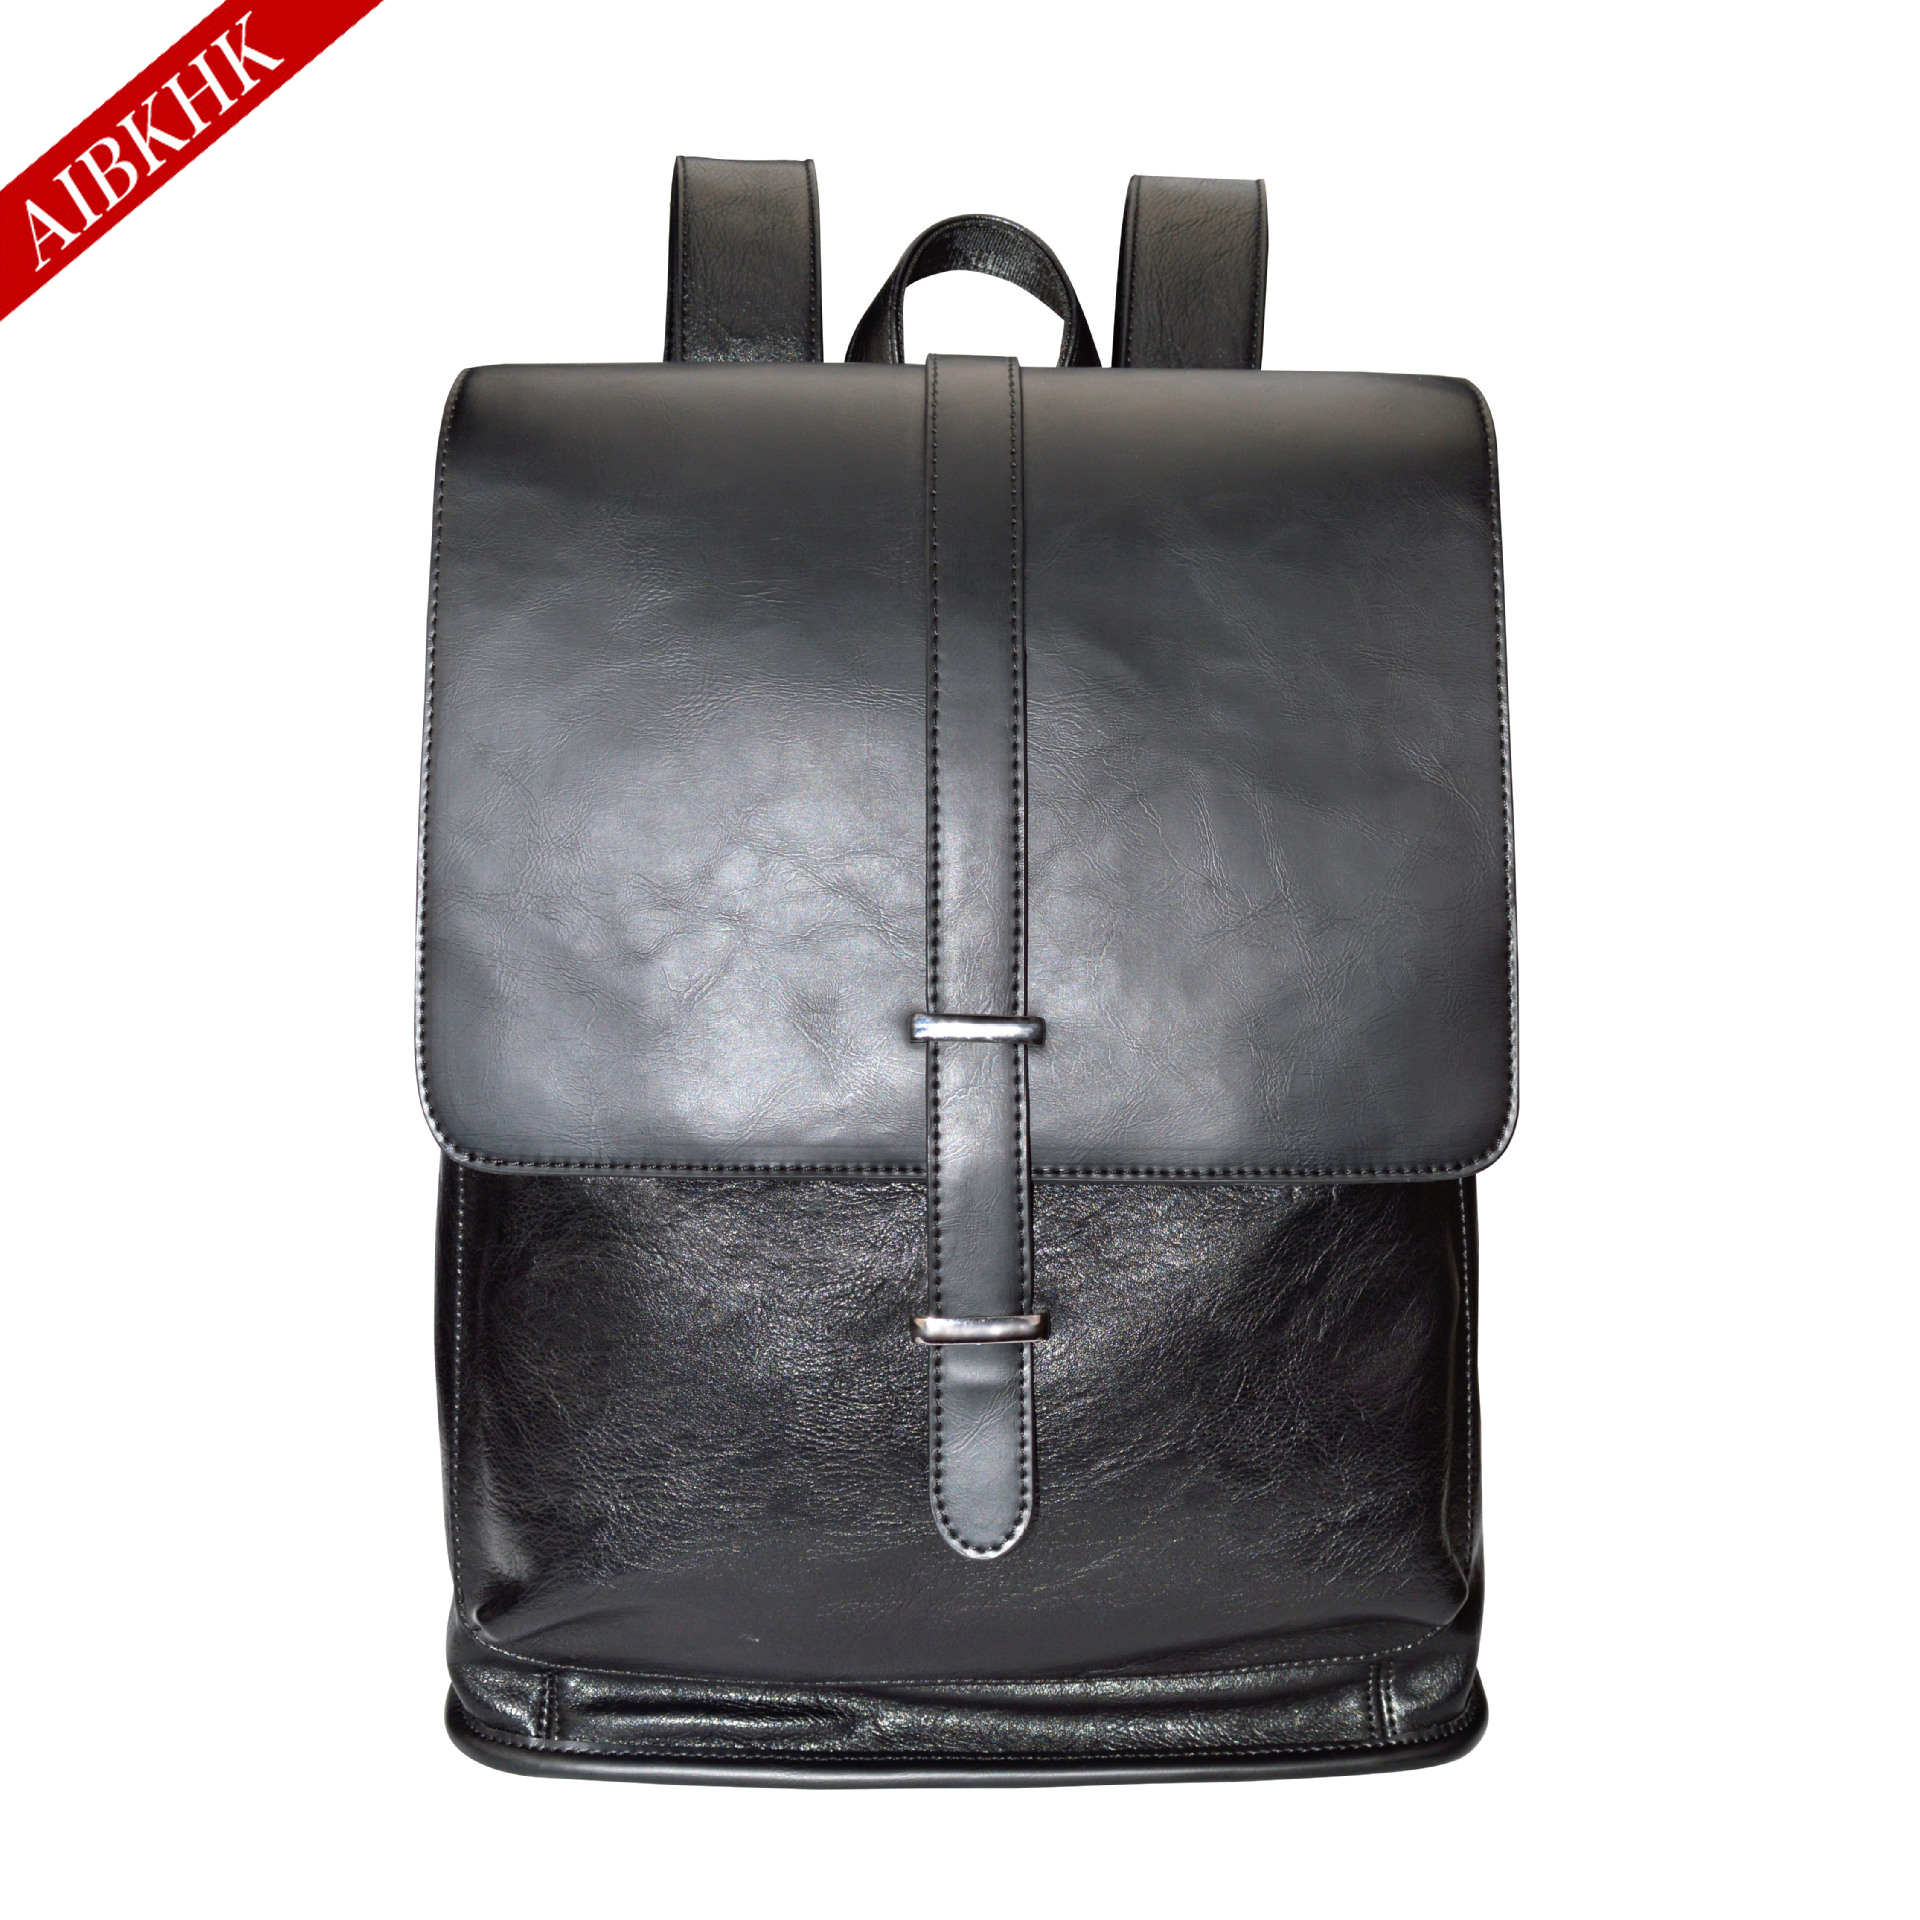 2017 New Fashion Male Men Backpacks Fashion High Quality Pu Leather Male Korean Student Backpack Boy Business Laptop School Bag 2017 senkey style new fashion casual backpack men travel computer laptop backpacks high quality for teenagers student school bag